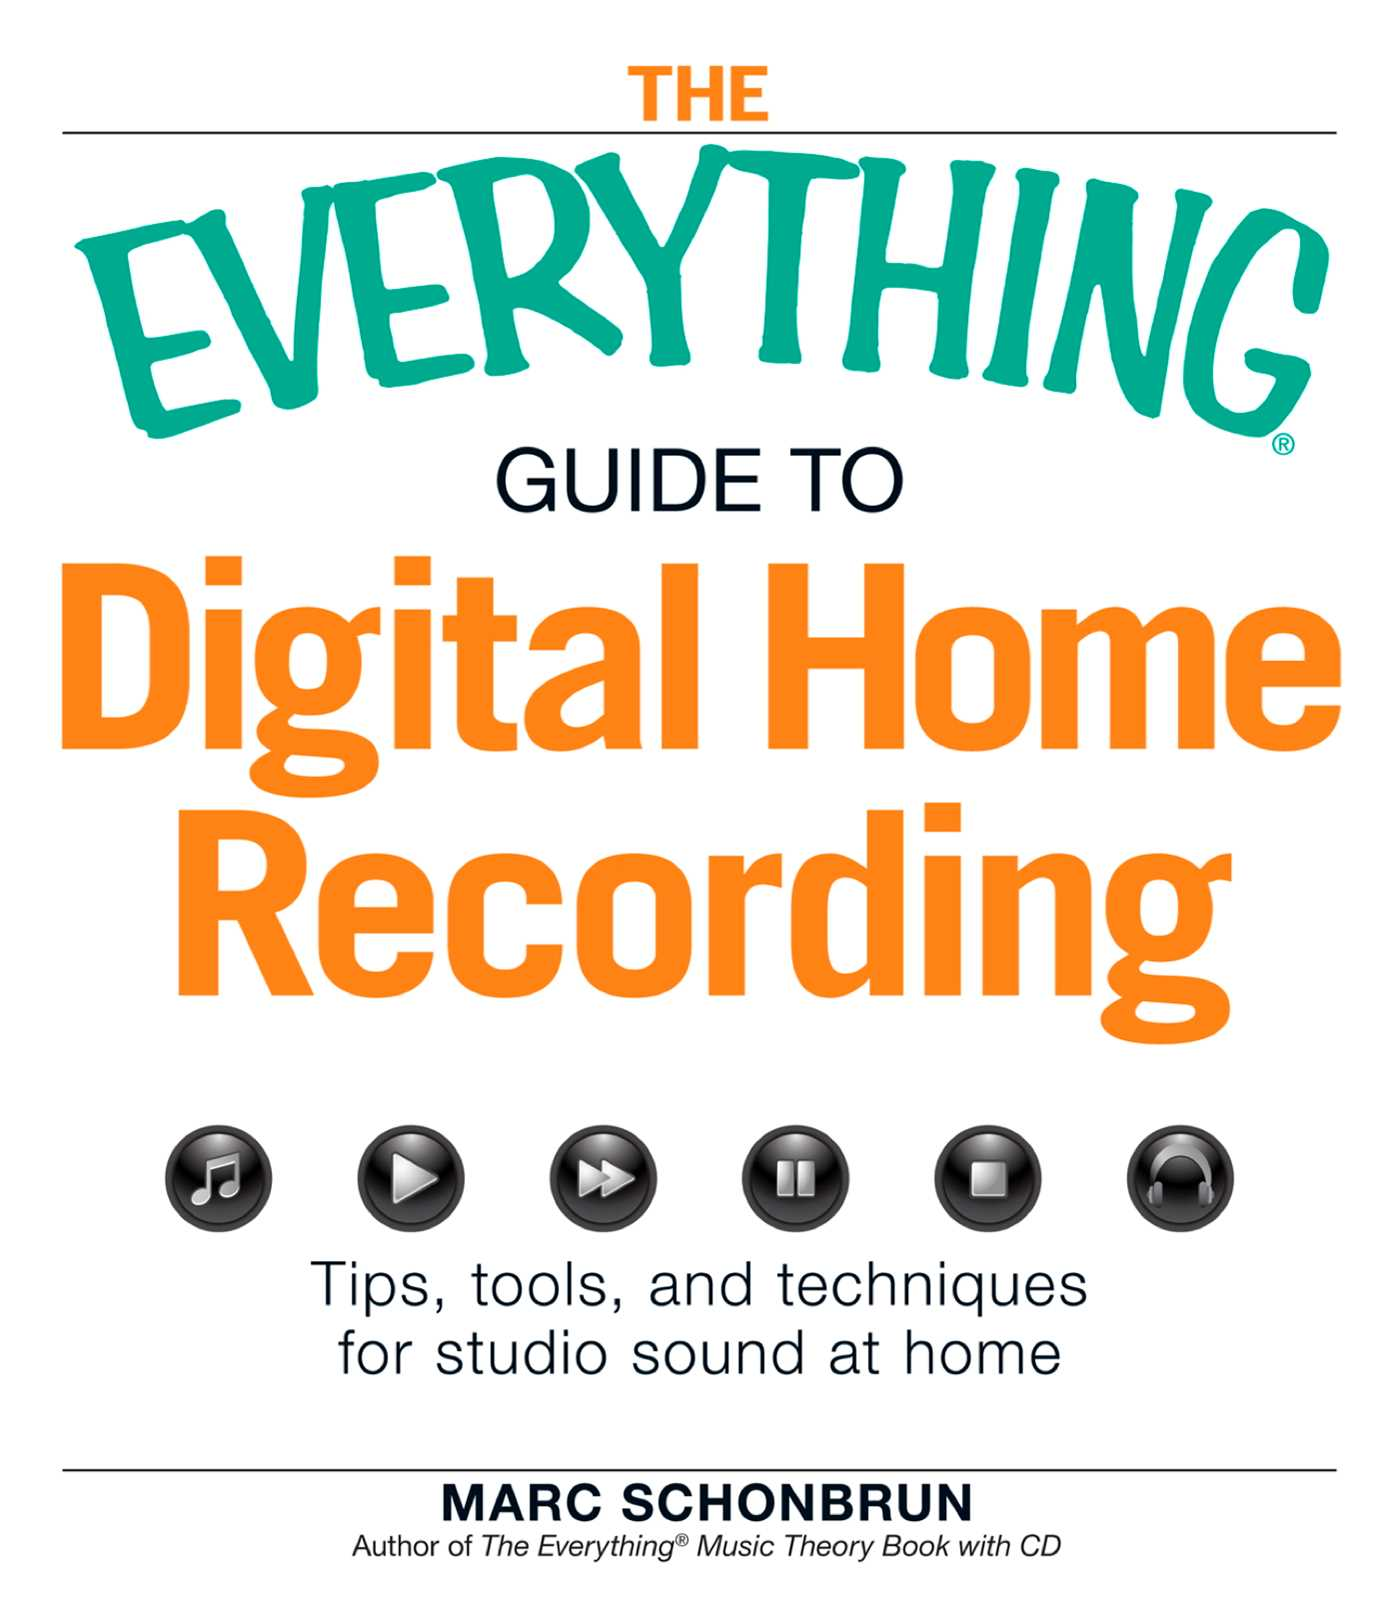 The Everything Guide to Digital Home Recording eBook by Marc ... on home design tips, home inspection tips, travel tips, recording vocals at home, home organization tips, recording studio software, home photography tips, songwriting tips, home lighting tips, home security tips, computer tips, home network tips, home management tips, home storage tips, home marketing tips, home filing tips, piano lessons for beginners, music recording, home audio tips,